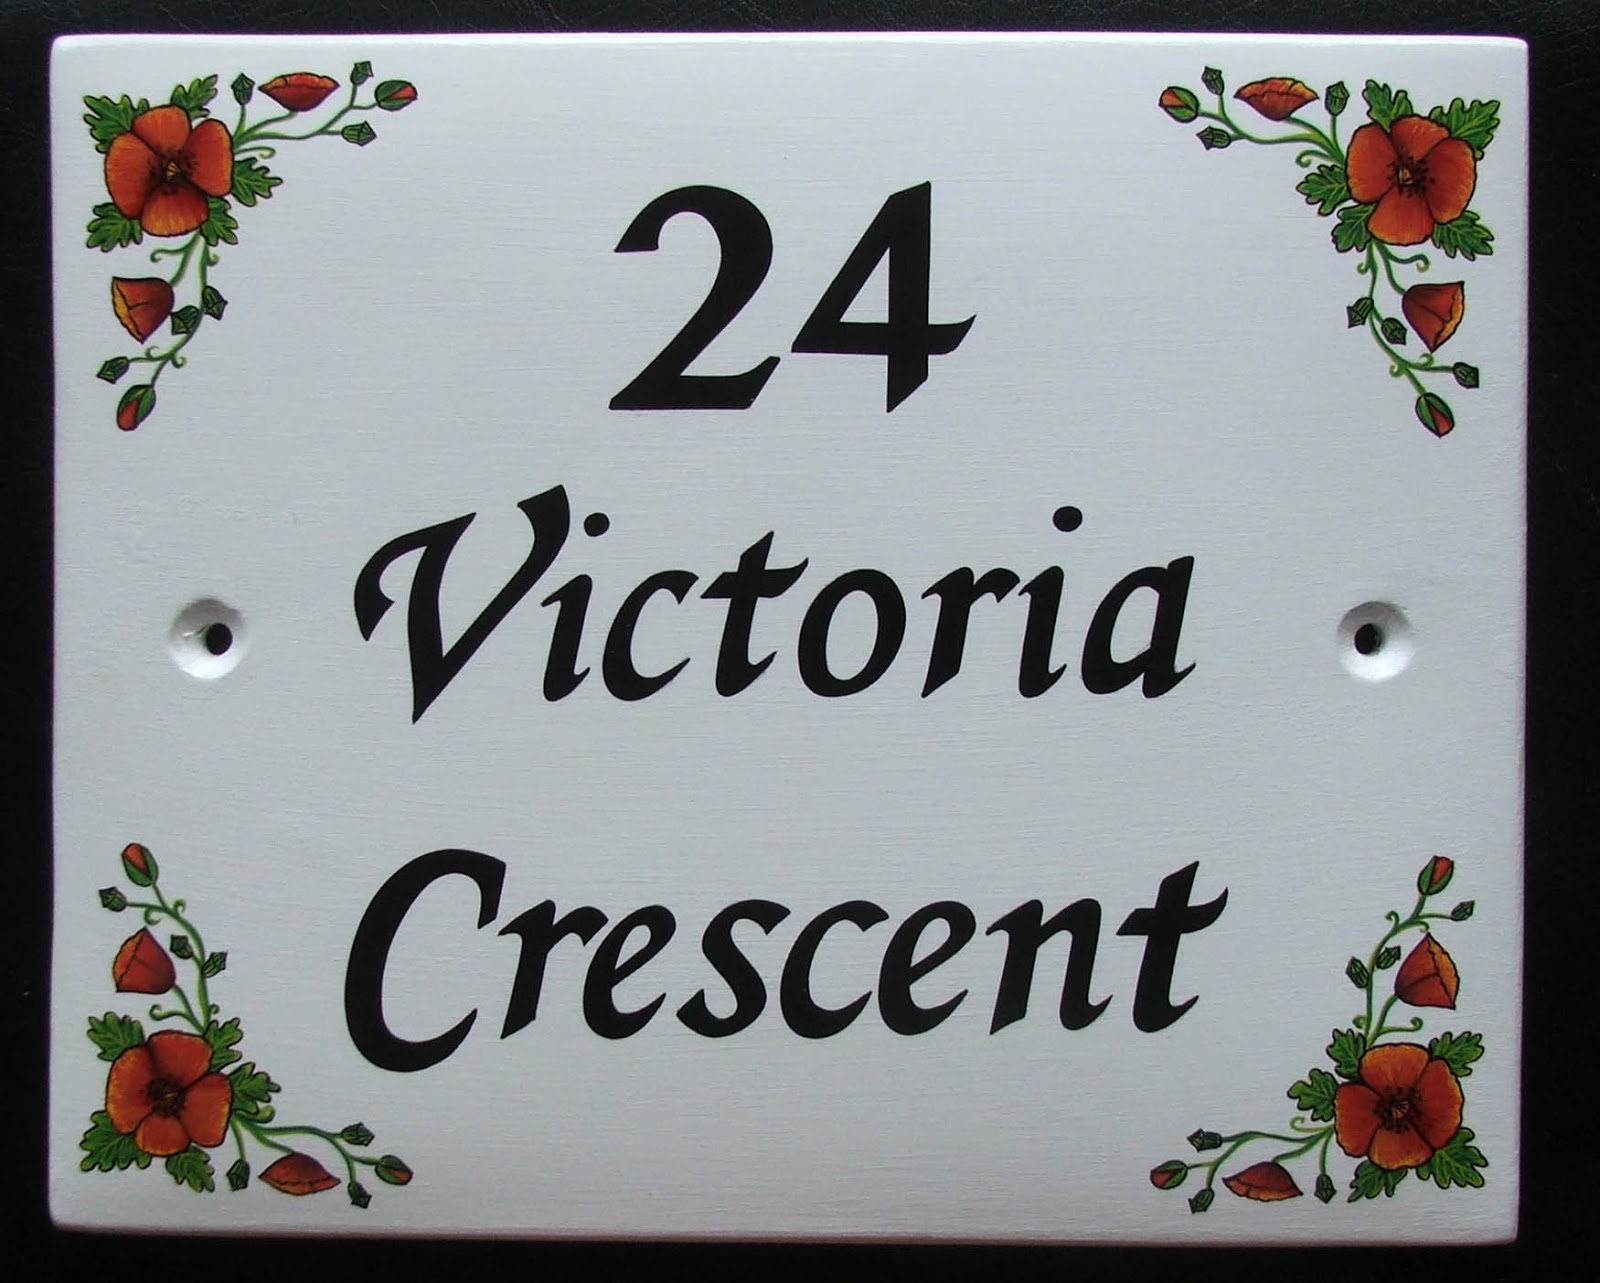 Hand painted house signs by ceramic art hand painted ceramic hand painted ceramic house signs number signs address plaques and name plates dailygadgetfo Gallery